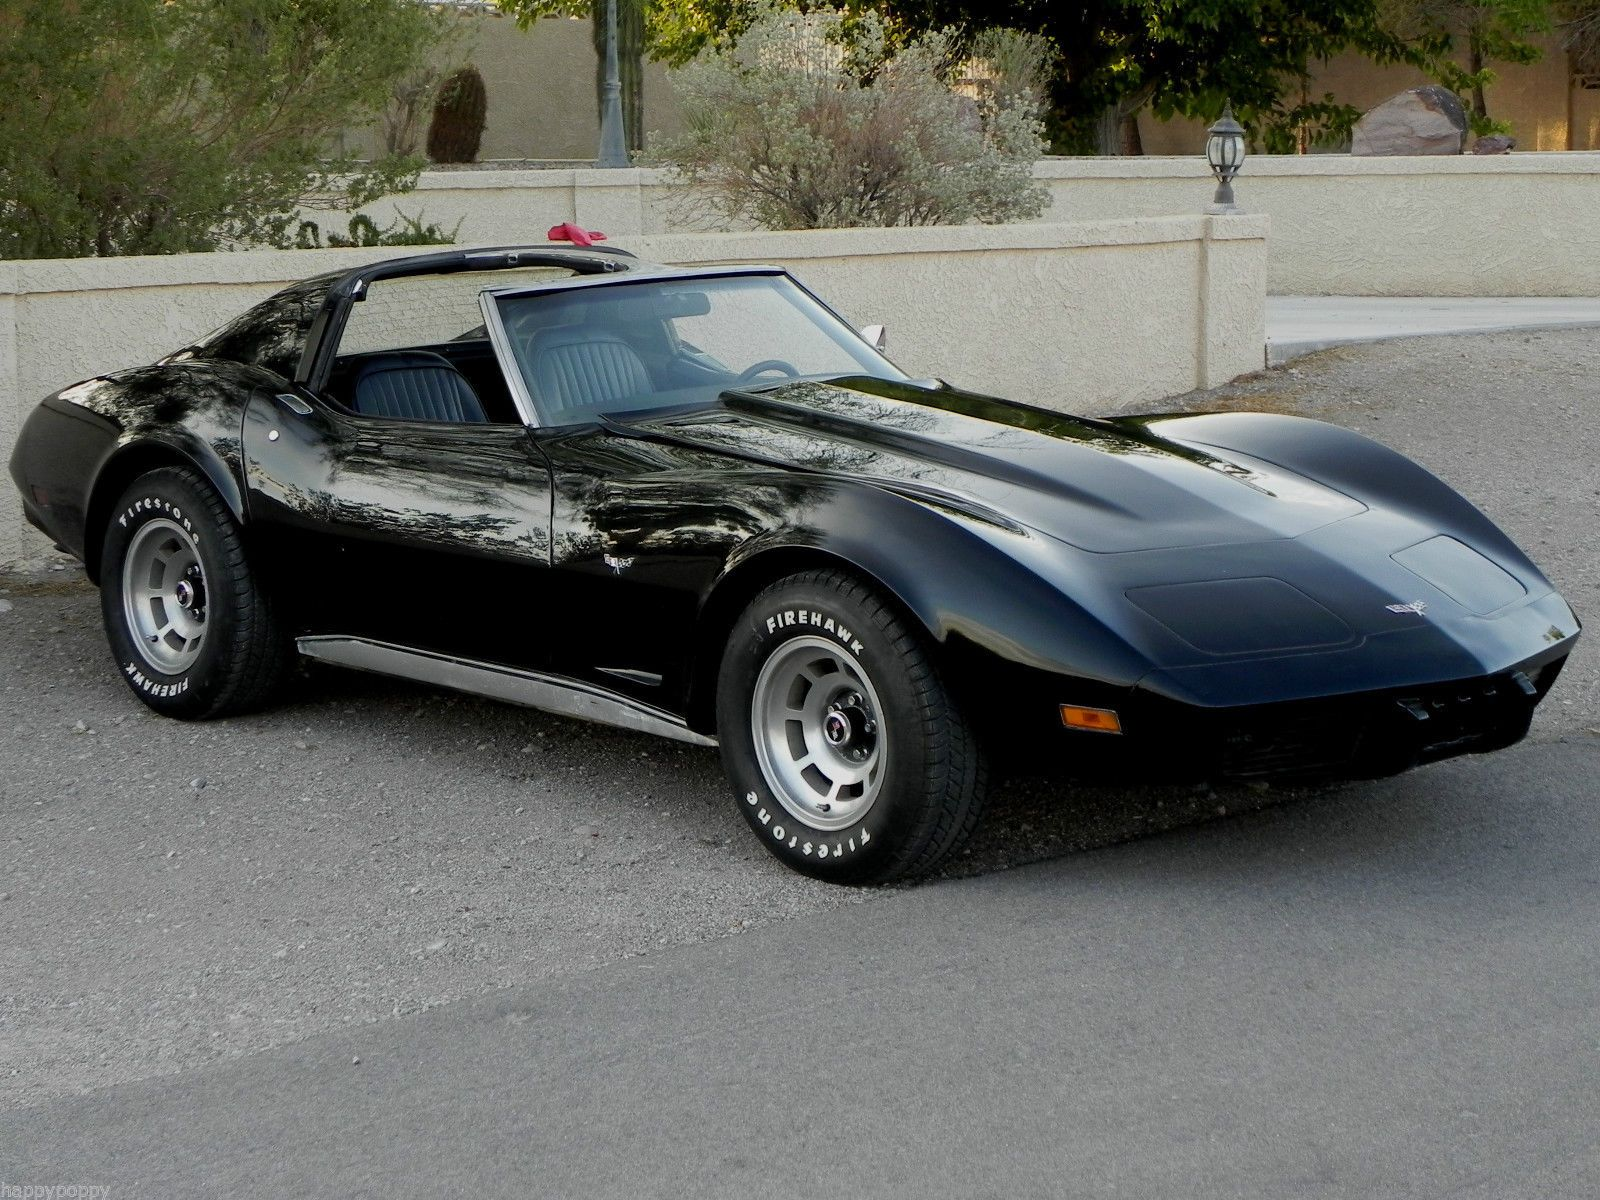 1977 Chevy Corvette 4spd Click to Find out more - http://fastmusclecar.com/1977-chevy-corvette-4spd/